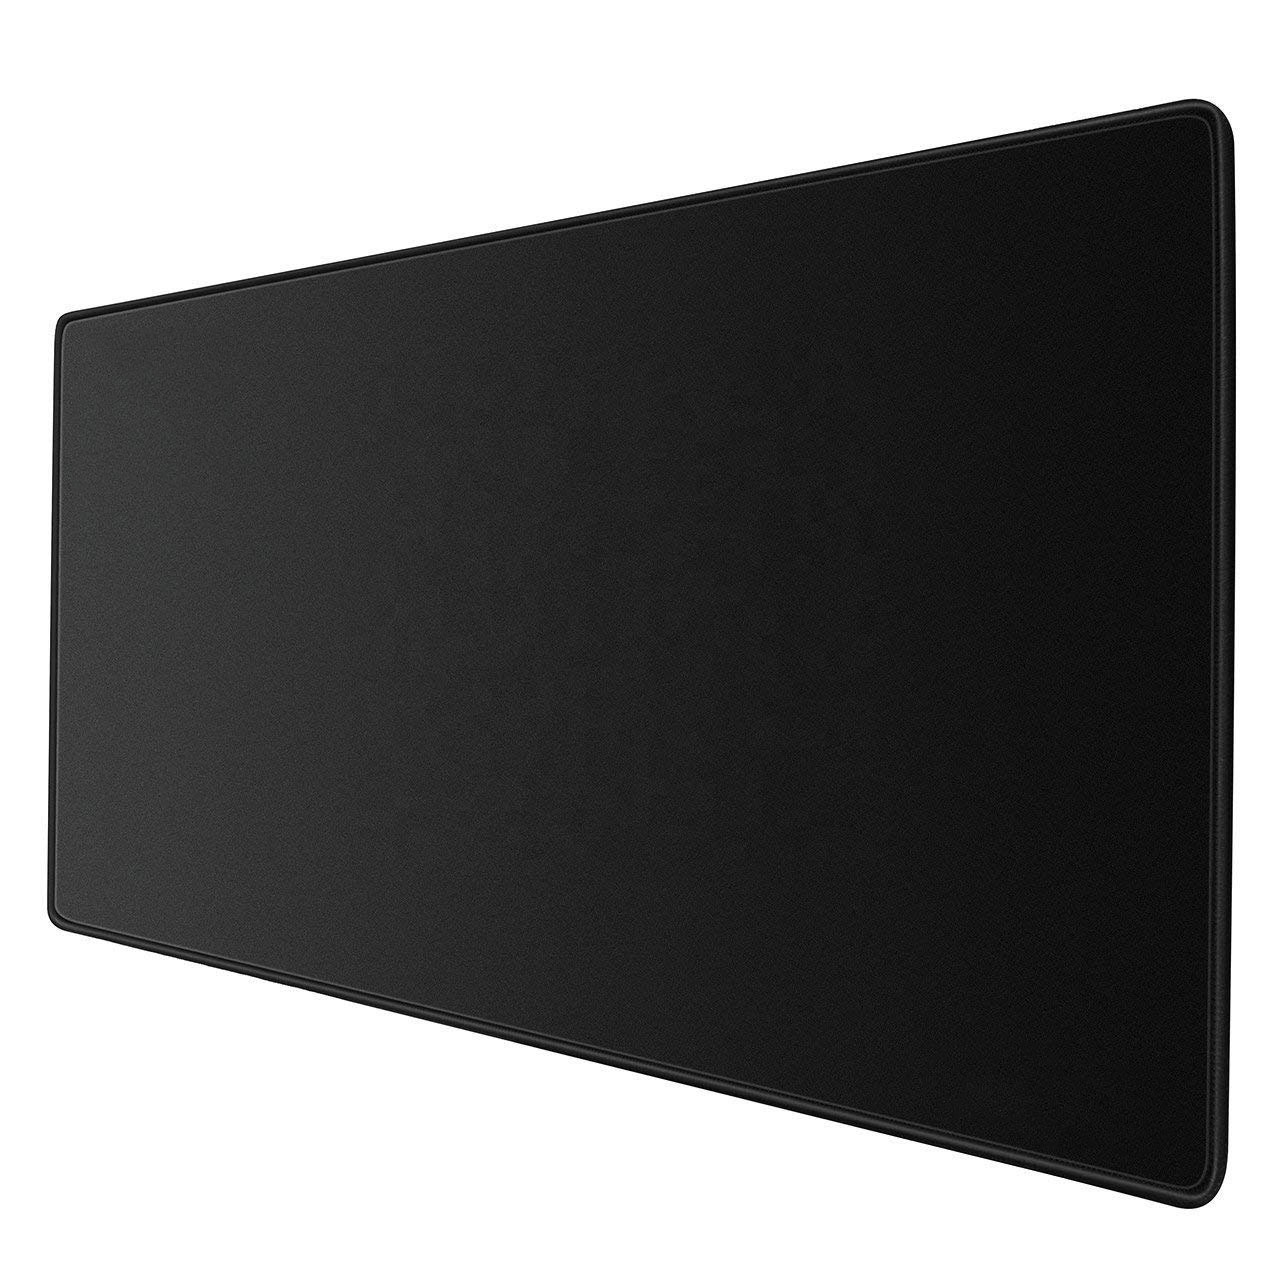 Popular Stitched Edge, Premium-Textured and Non-Slip Rubber Base Mouse pad for Laptop, Computer & PC